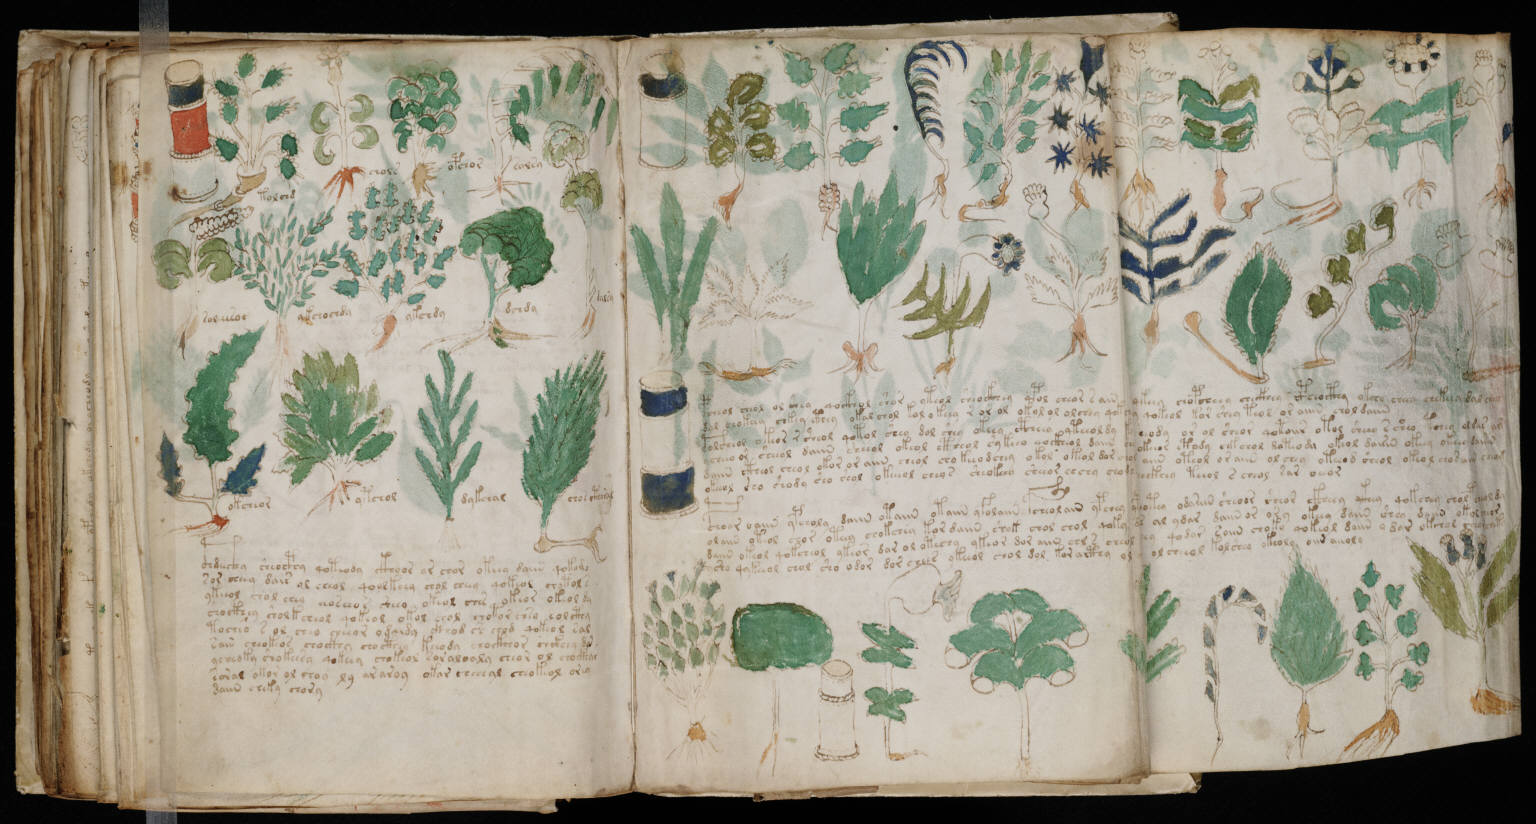 three pages from the Voynich manuscript, showing script and botanical drawings